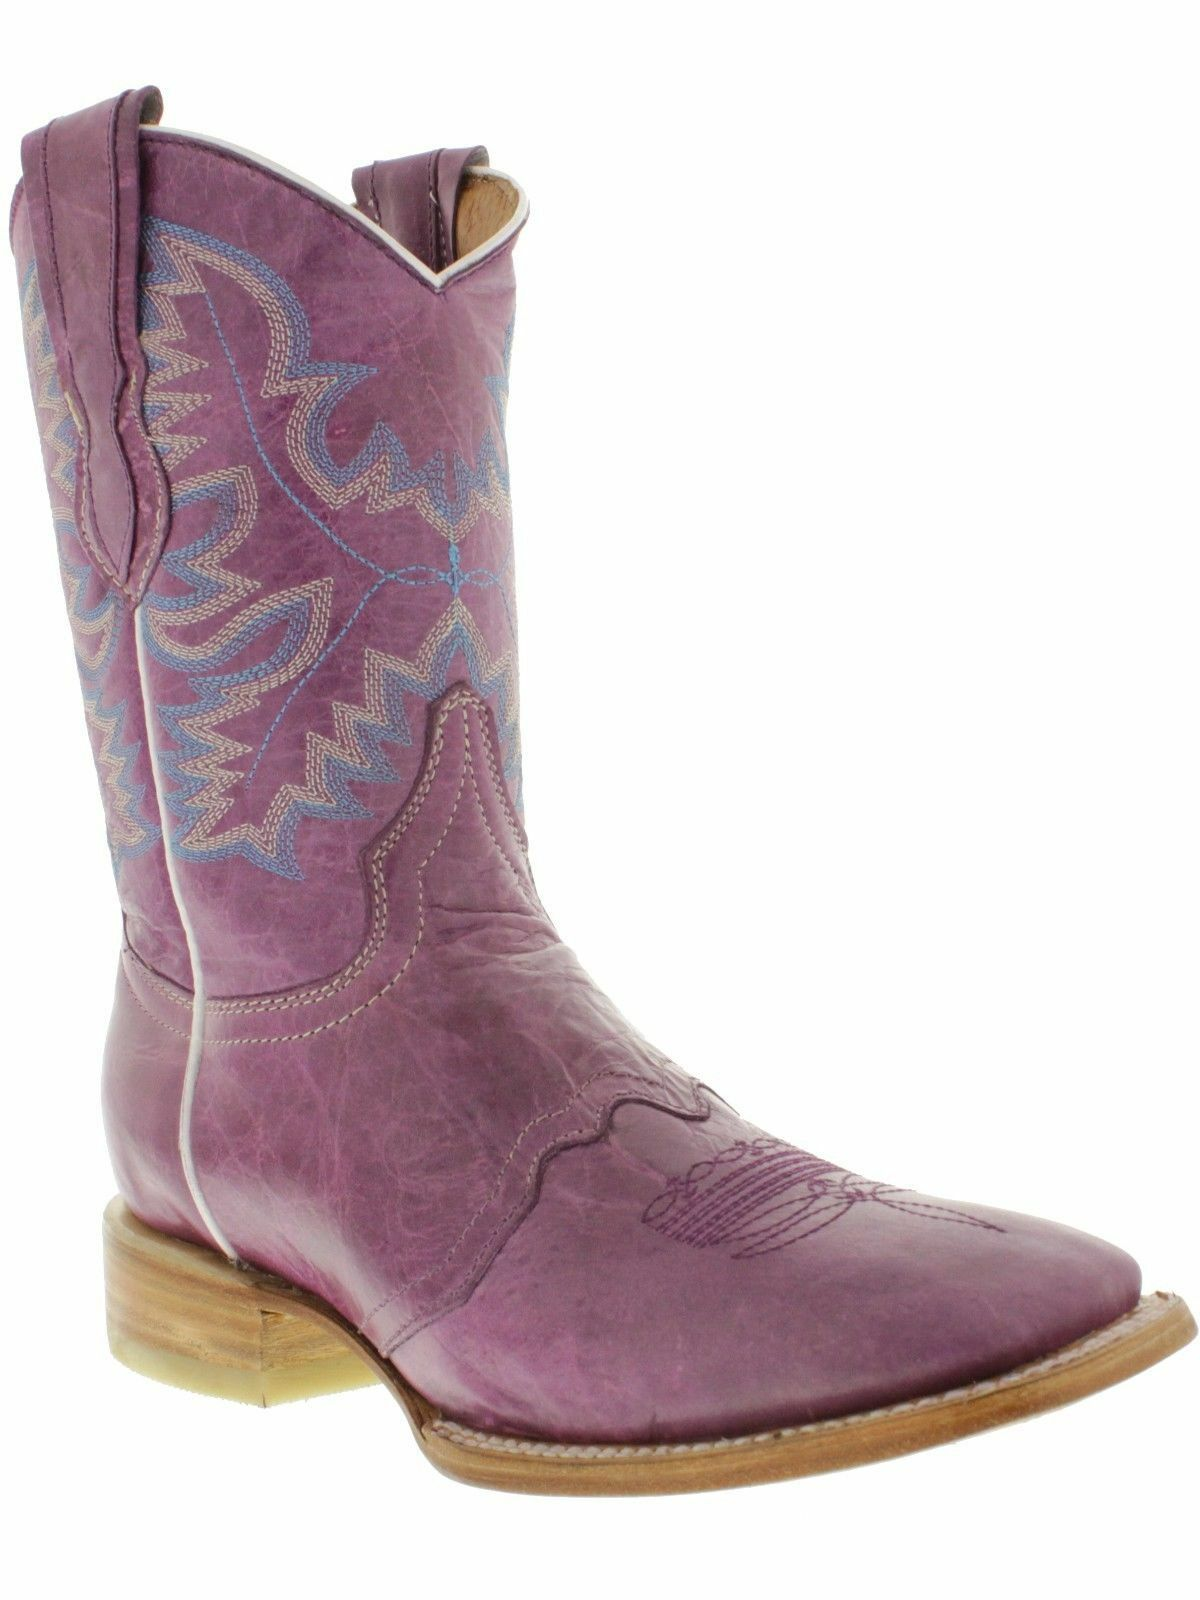 Women's Purple Purple Purple Stitched Leather Mid Calf Cowgirl Boots Western Wear Square Toe b6c850